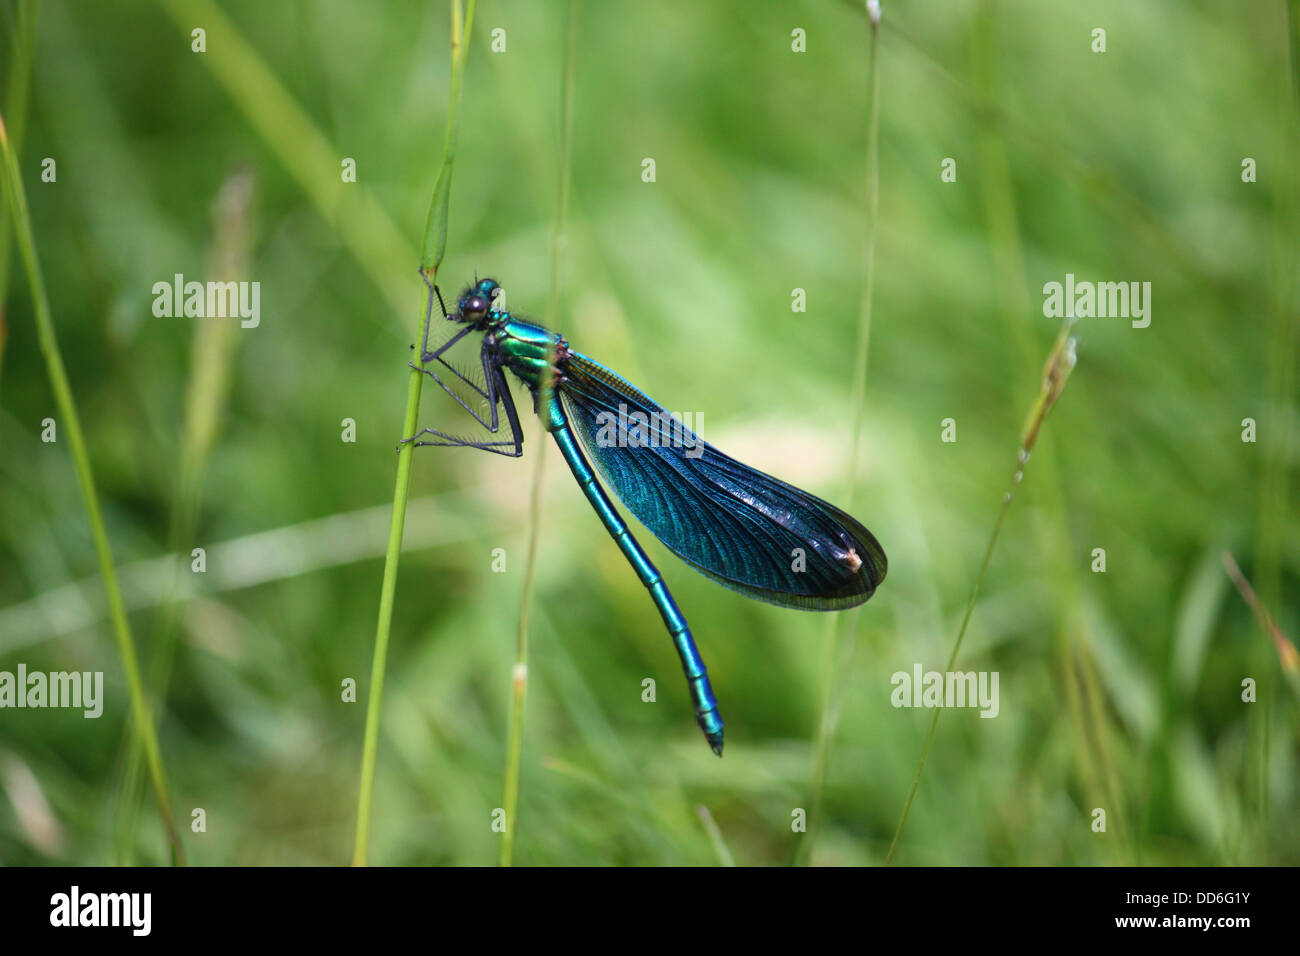 beautiful petrol blue green dragonfly on a blade of grass - Stock Image